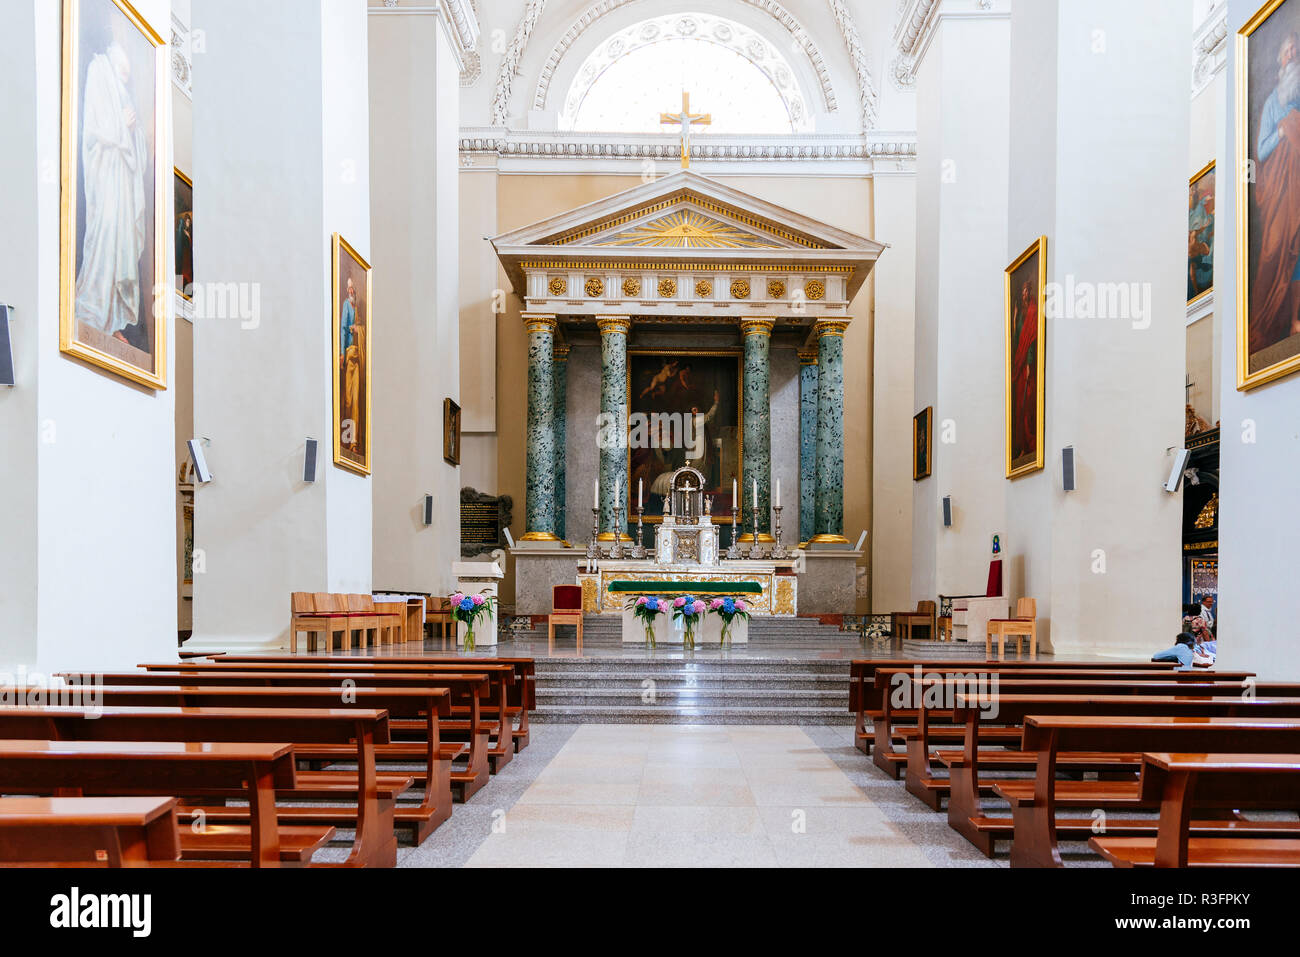 Altar and Altarpiece, Cathedral Basilica of St Stanislaus and St Ladislaus of Vilnius is the main Roman Catholic Cathedral of Lithuania.Vilnius, Vilni - Stock Image